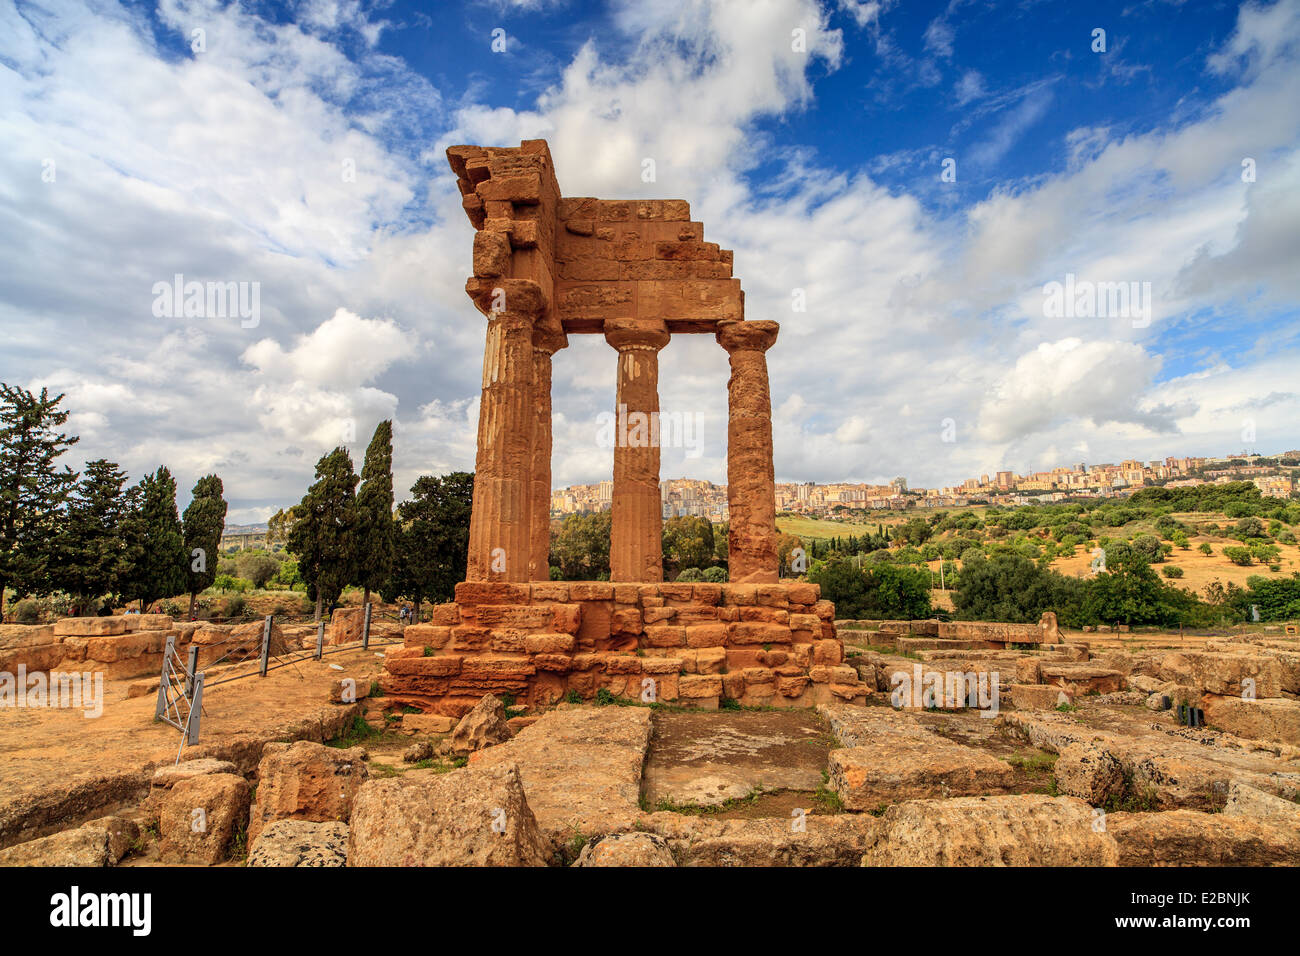 Archaic Greek Temple of the Dioscuri in Valley of Temples - Stock Image